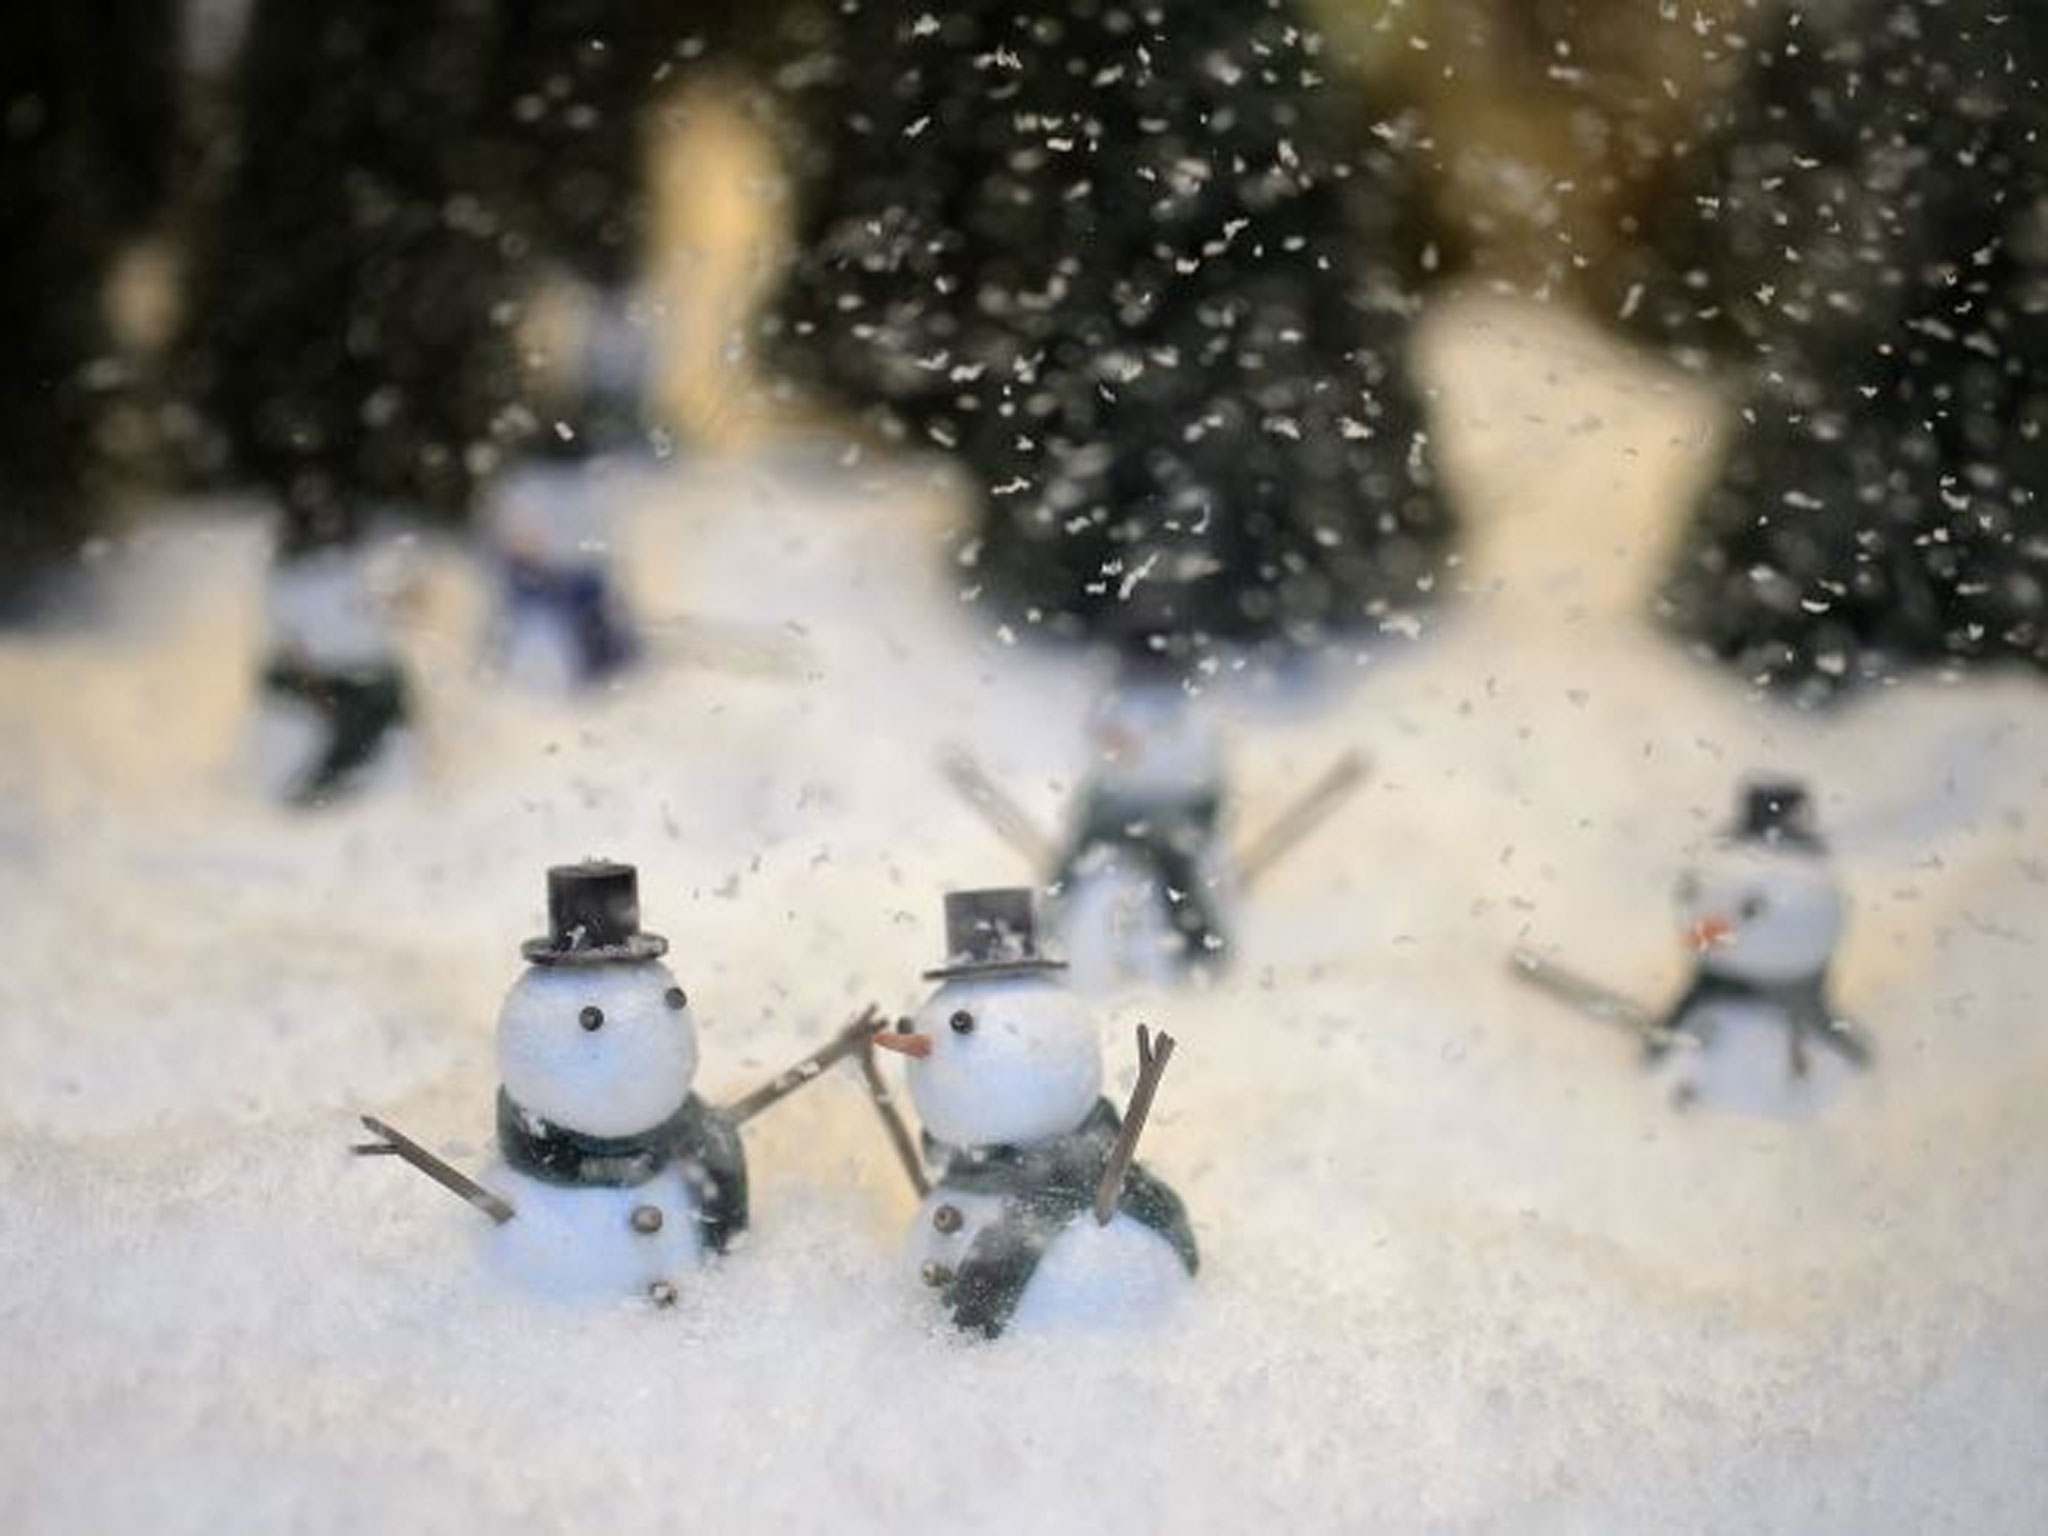 These are little snowmen enjoying the snow, details from Selfridges winter window display.